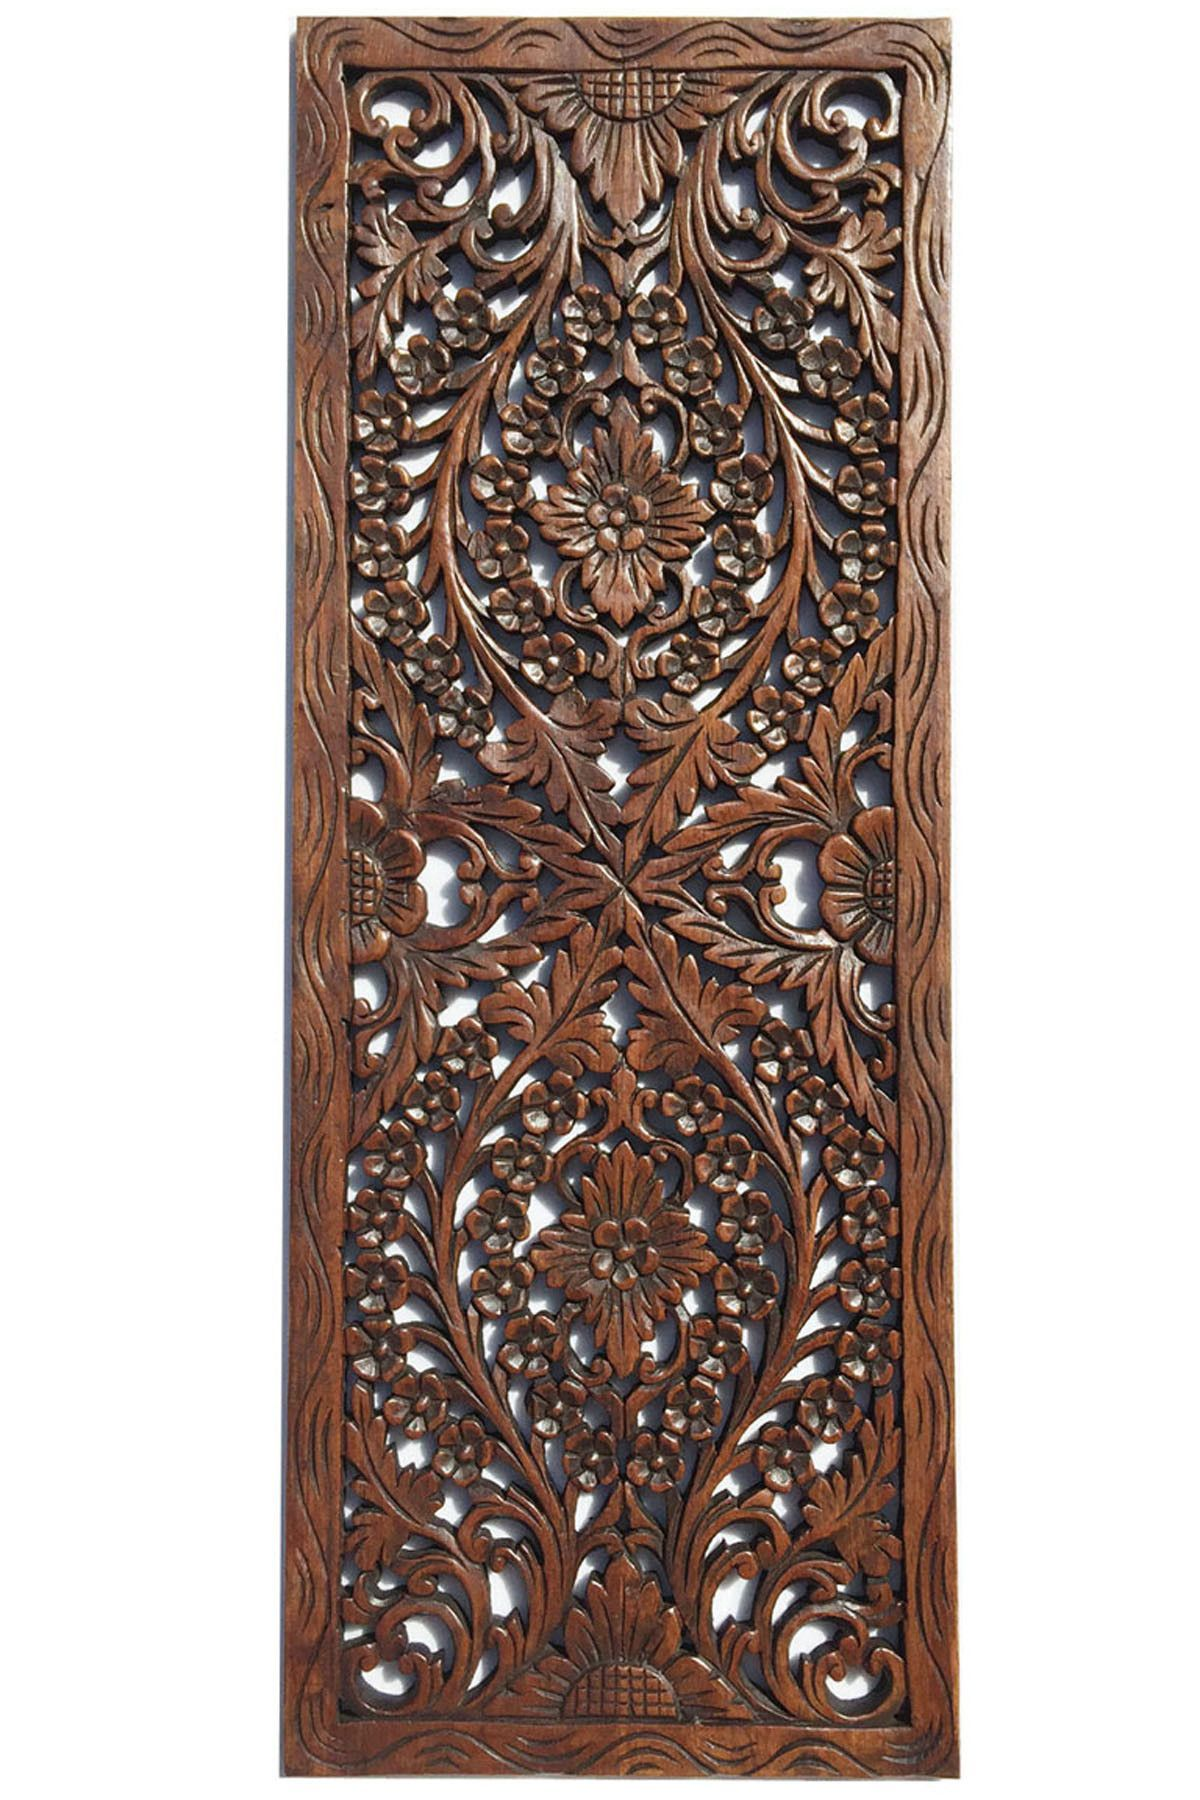 Floral Wood Carved Wall Panel. Wall Hanging. Asian Home Decor. Decorative  Thai Wall - Floral Wood Carved Wall Panel. Wall Hanging. Asian Home Decor